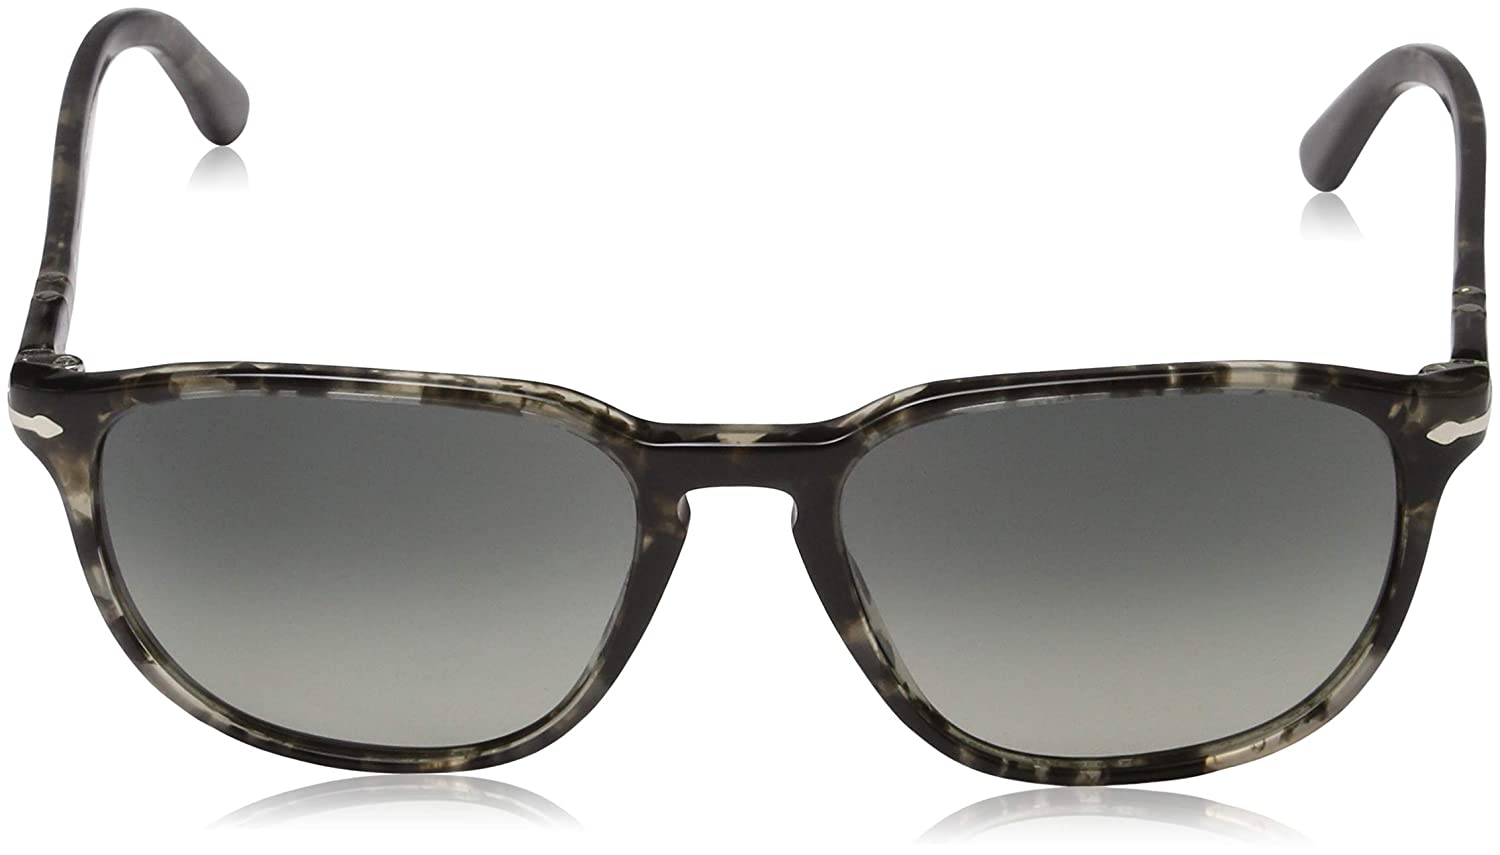 c32065976099 Persol Sonnenbrille (PO3019S)  Persol  Amazon.co.uk  Clothing